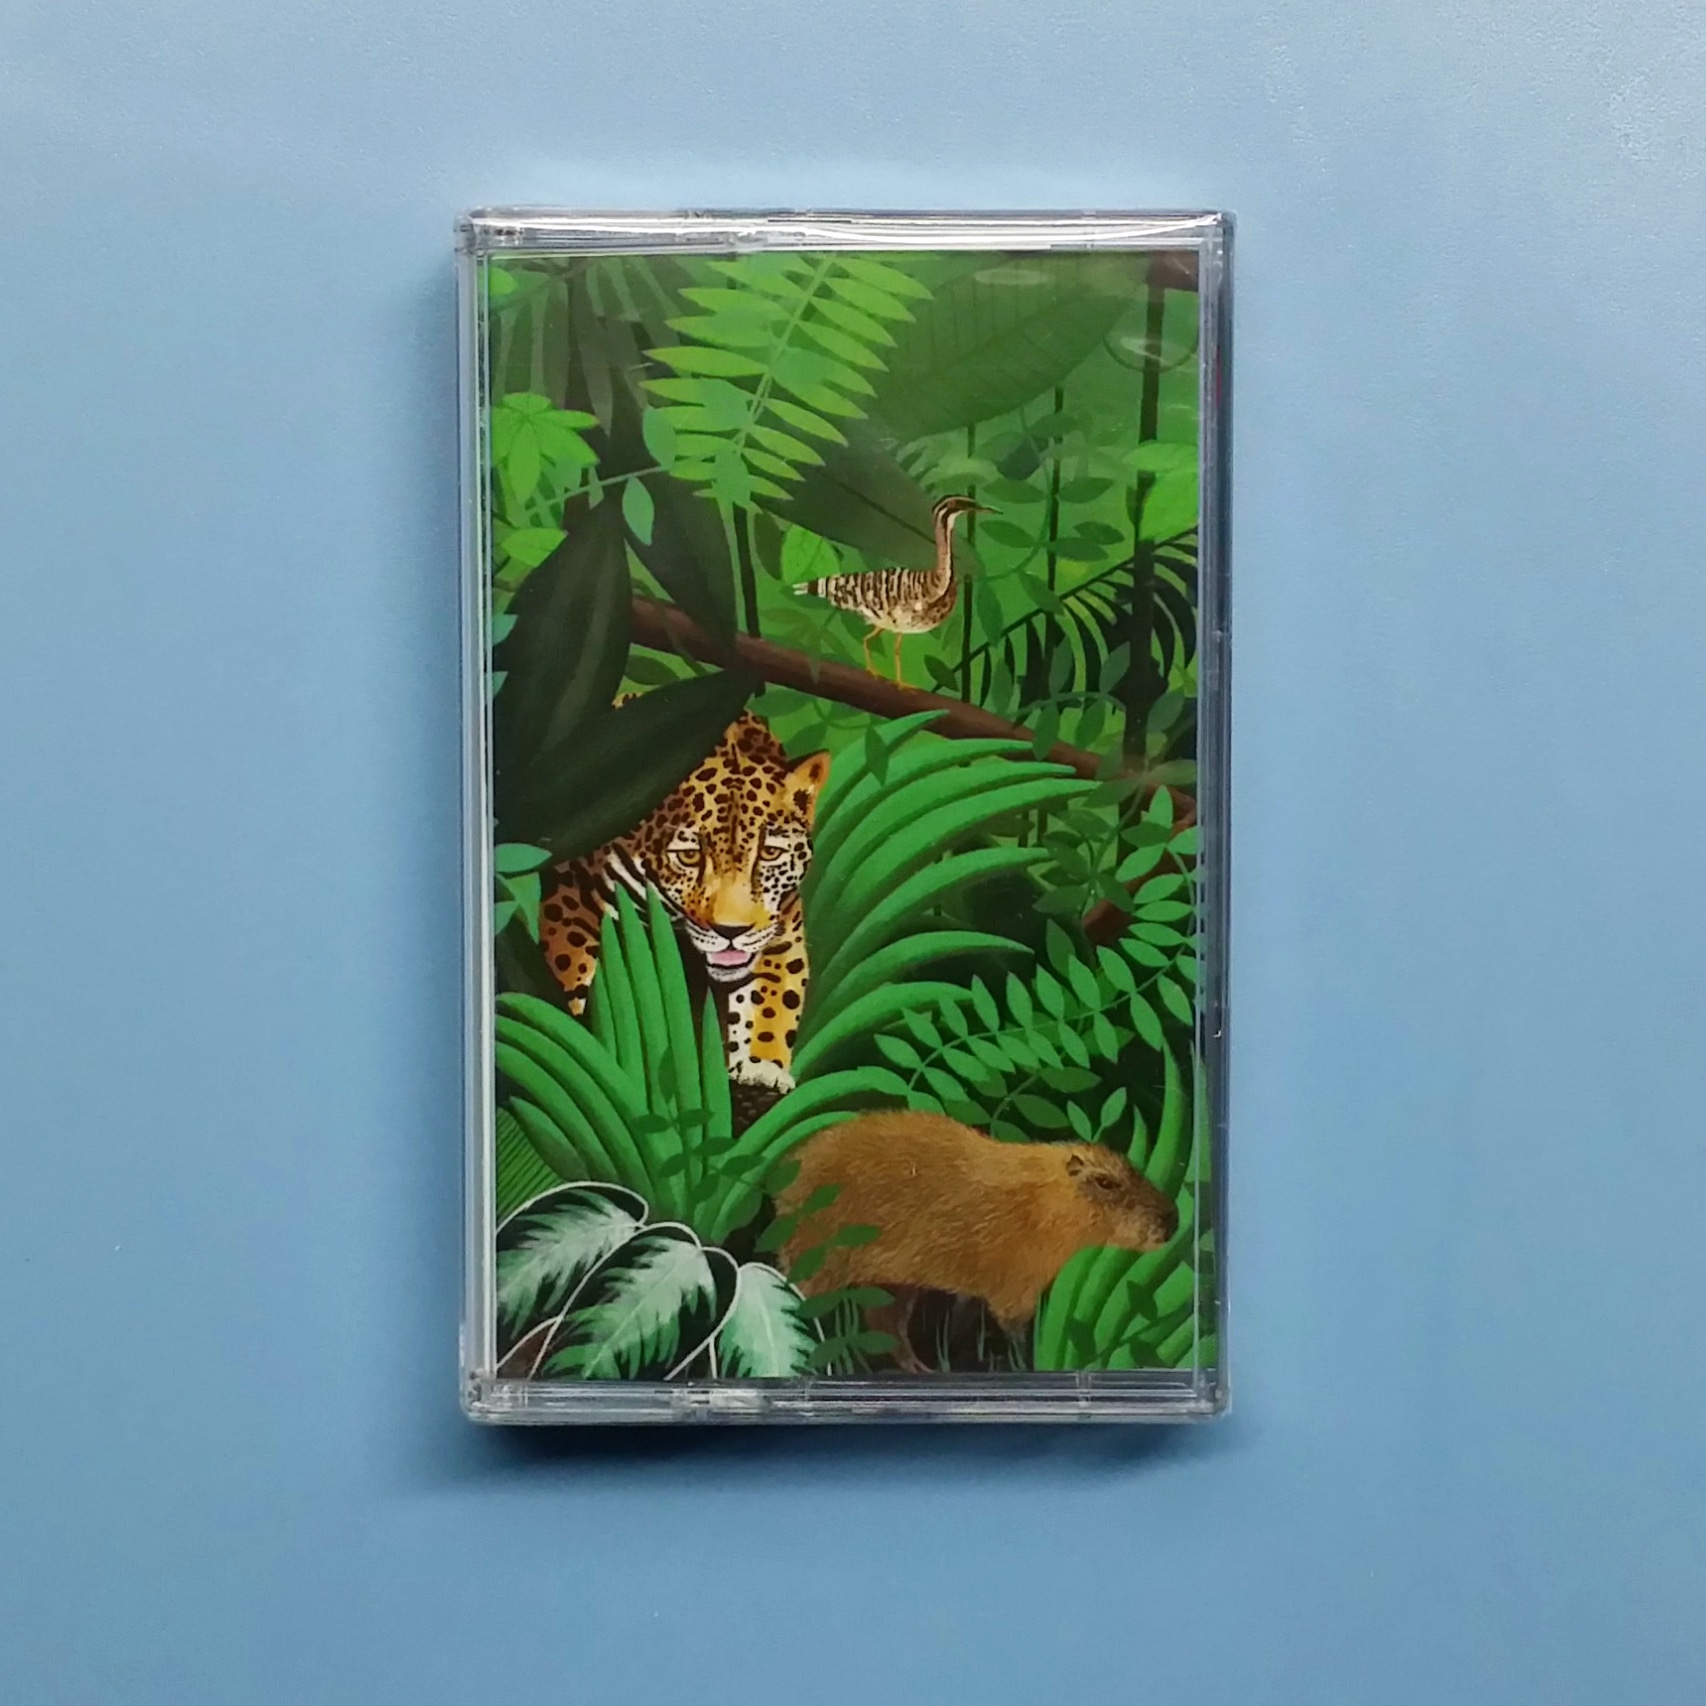 Turnover - Good Nature (Run for Cover Records)